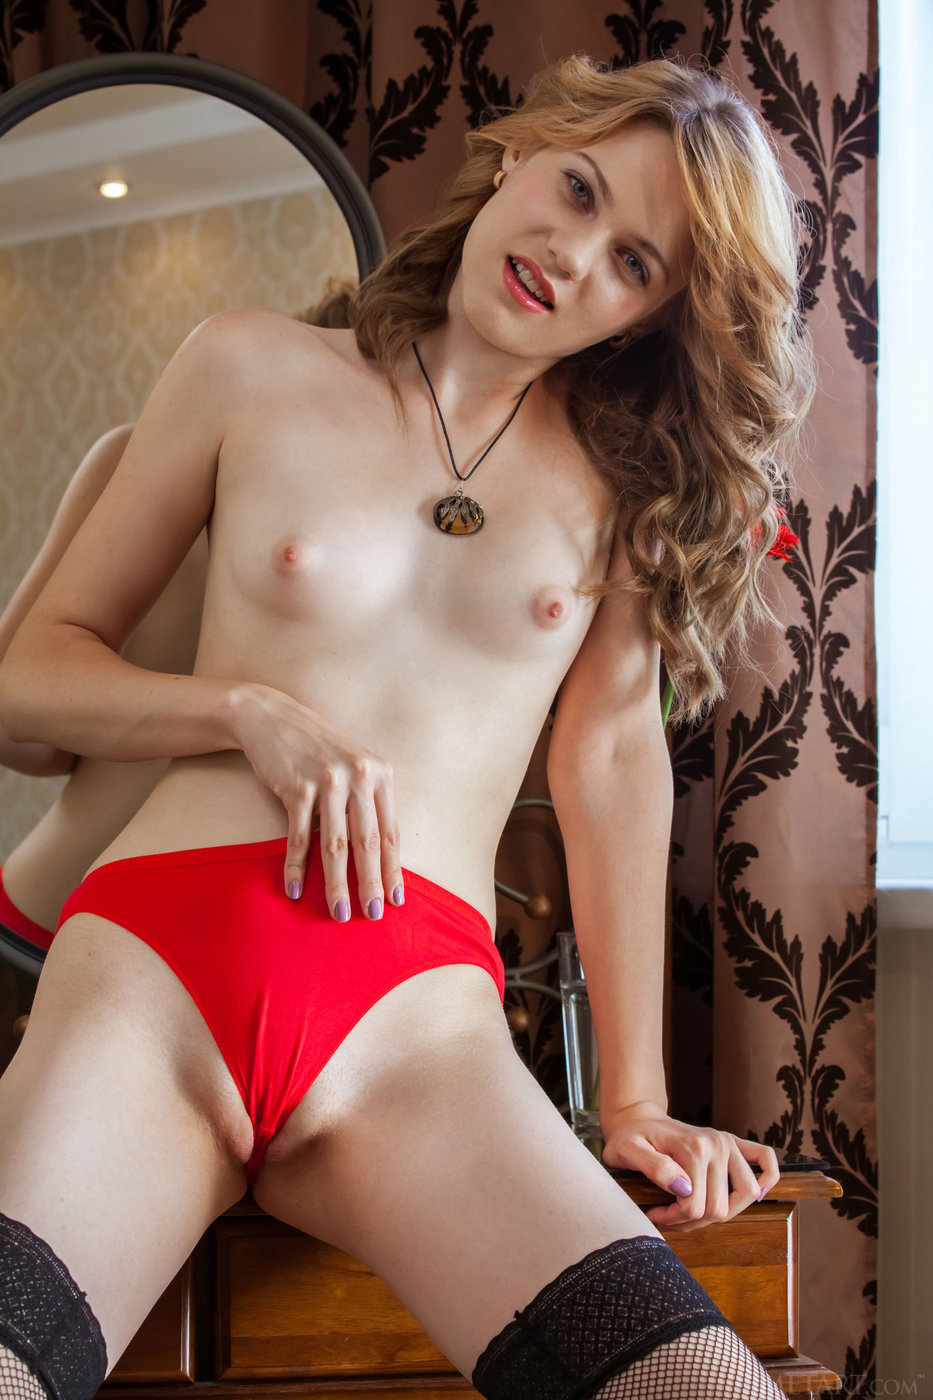 Wavy-haired blonde in red panties showing off her beautiful pussy